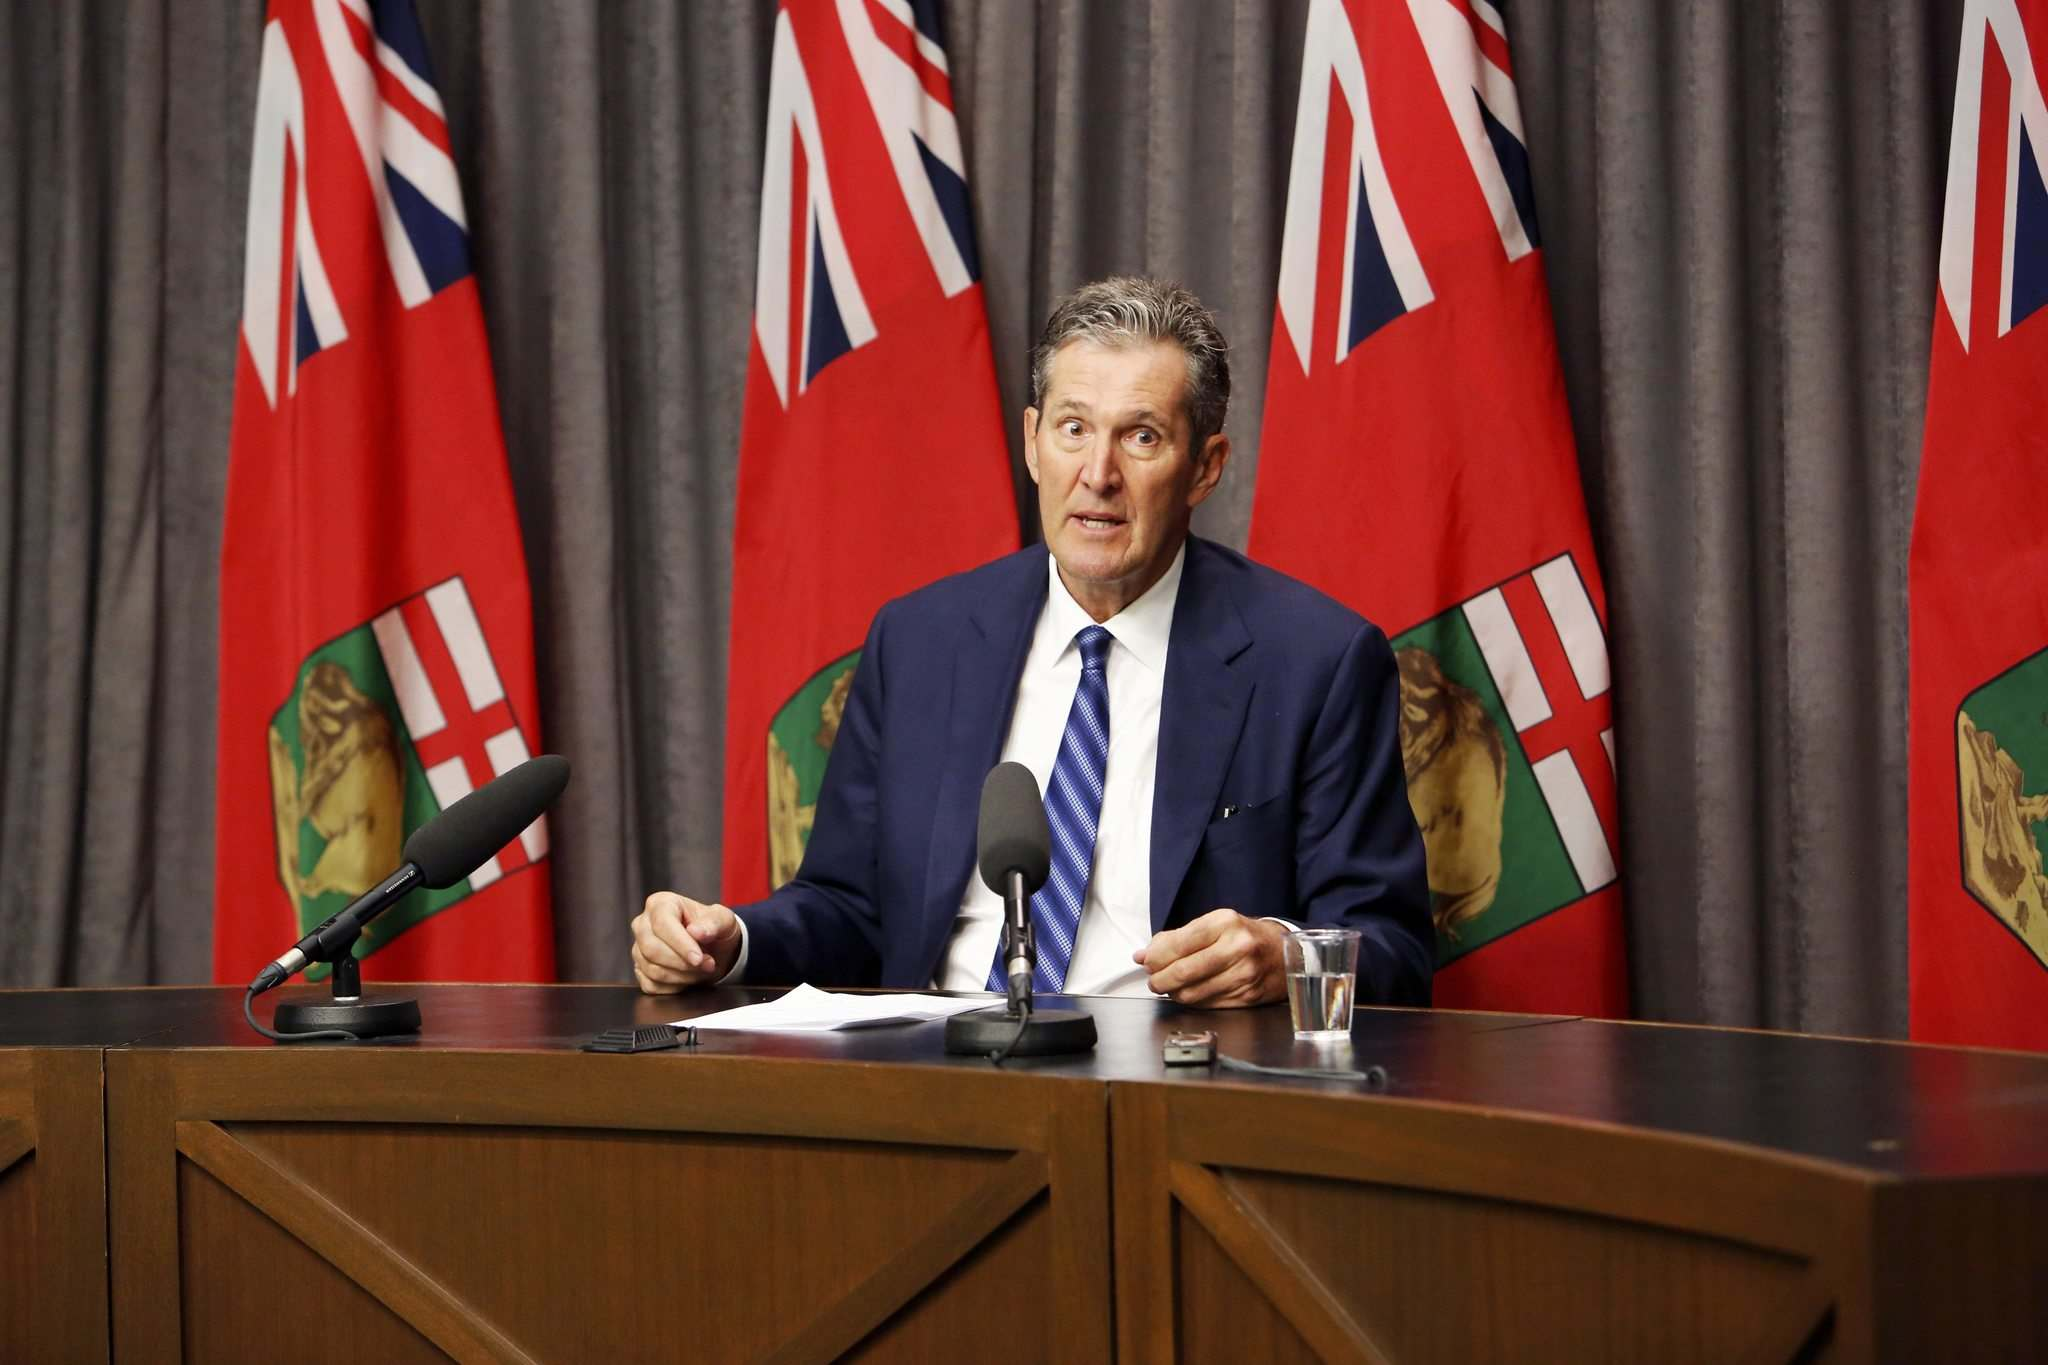 JUSTIN SAMANSKI-LANGILLE / WINNIPEG FREE PRESS FILES</p><p>Premier Brian Pallister opposes a federal carbon tax and instead favours a made-in-Manitoba climate and green plan that he says would be better tailored to the province's reality.</p>